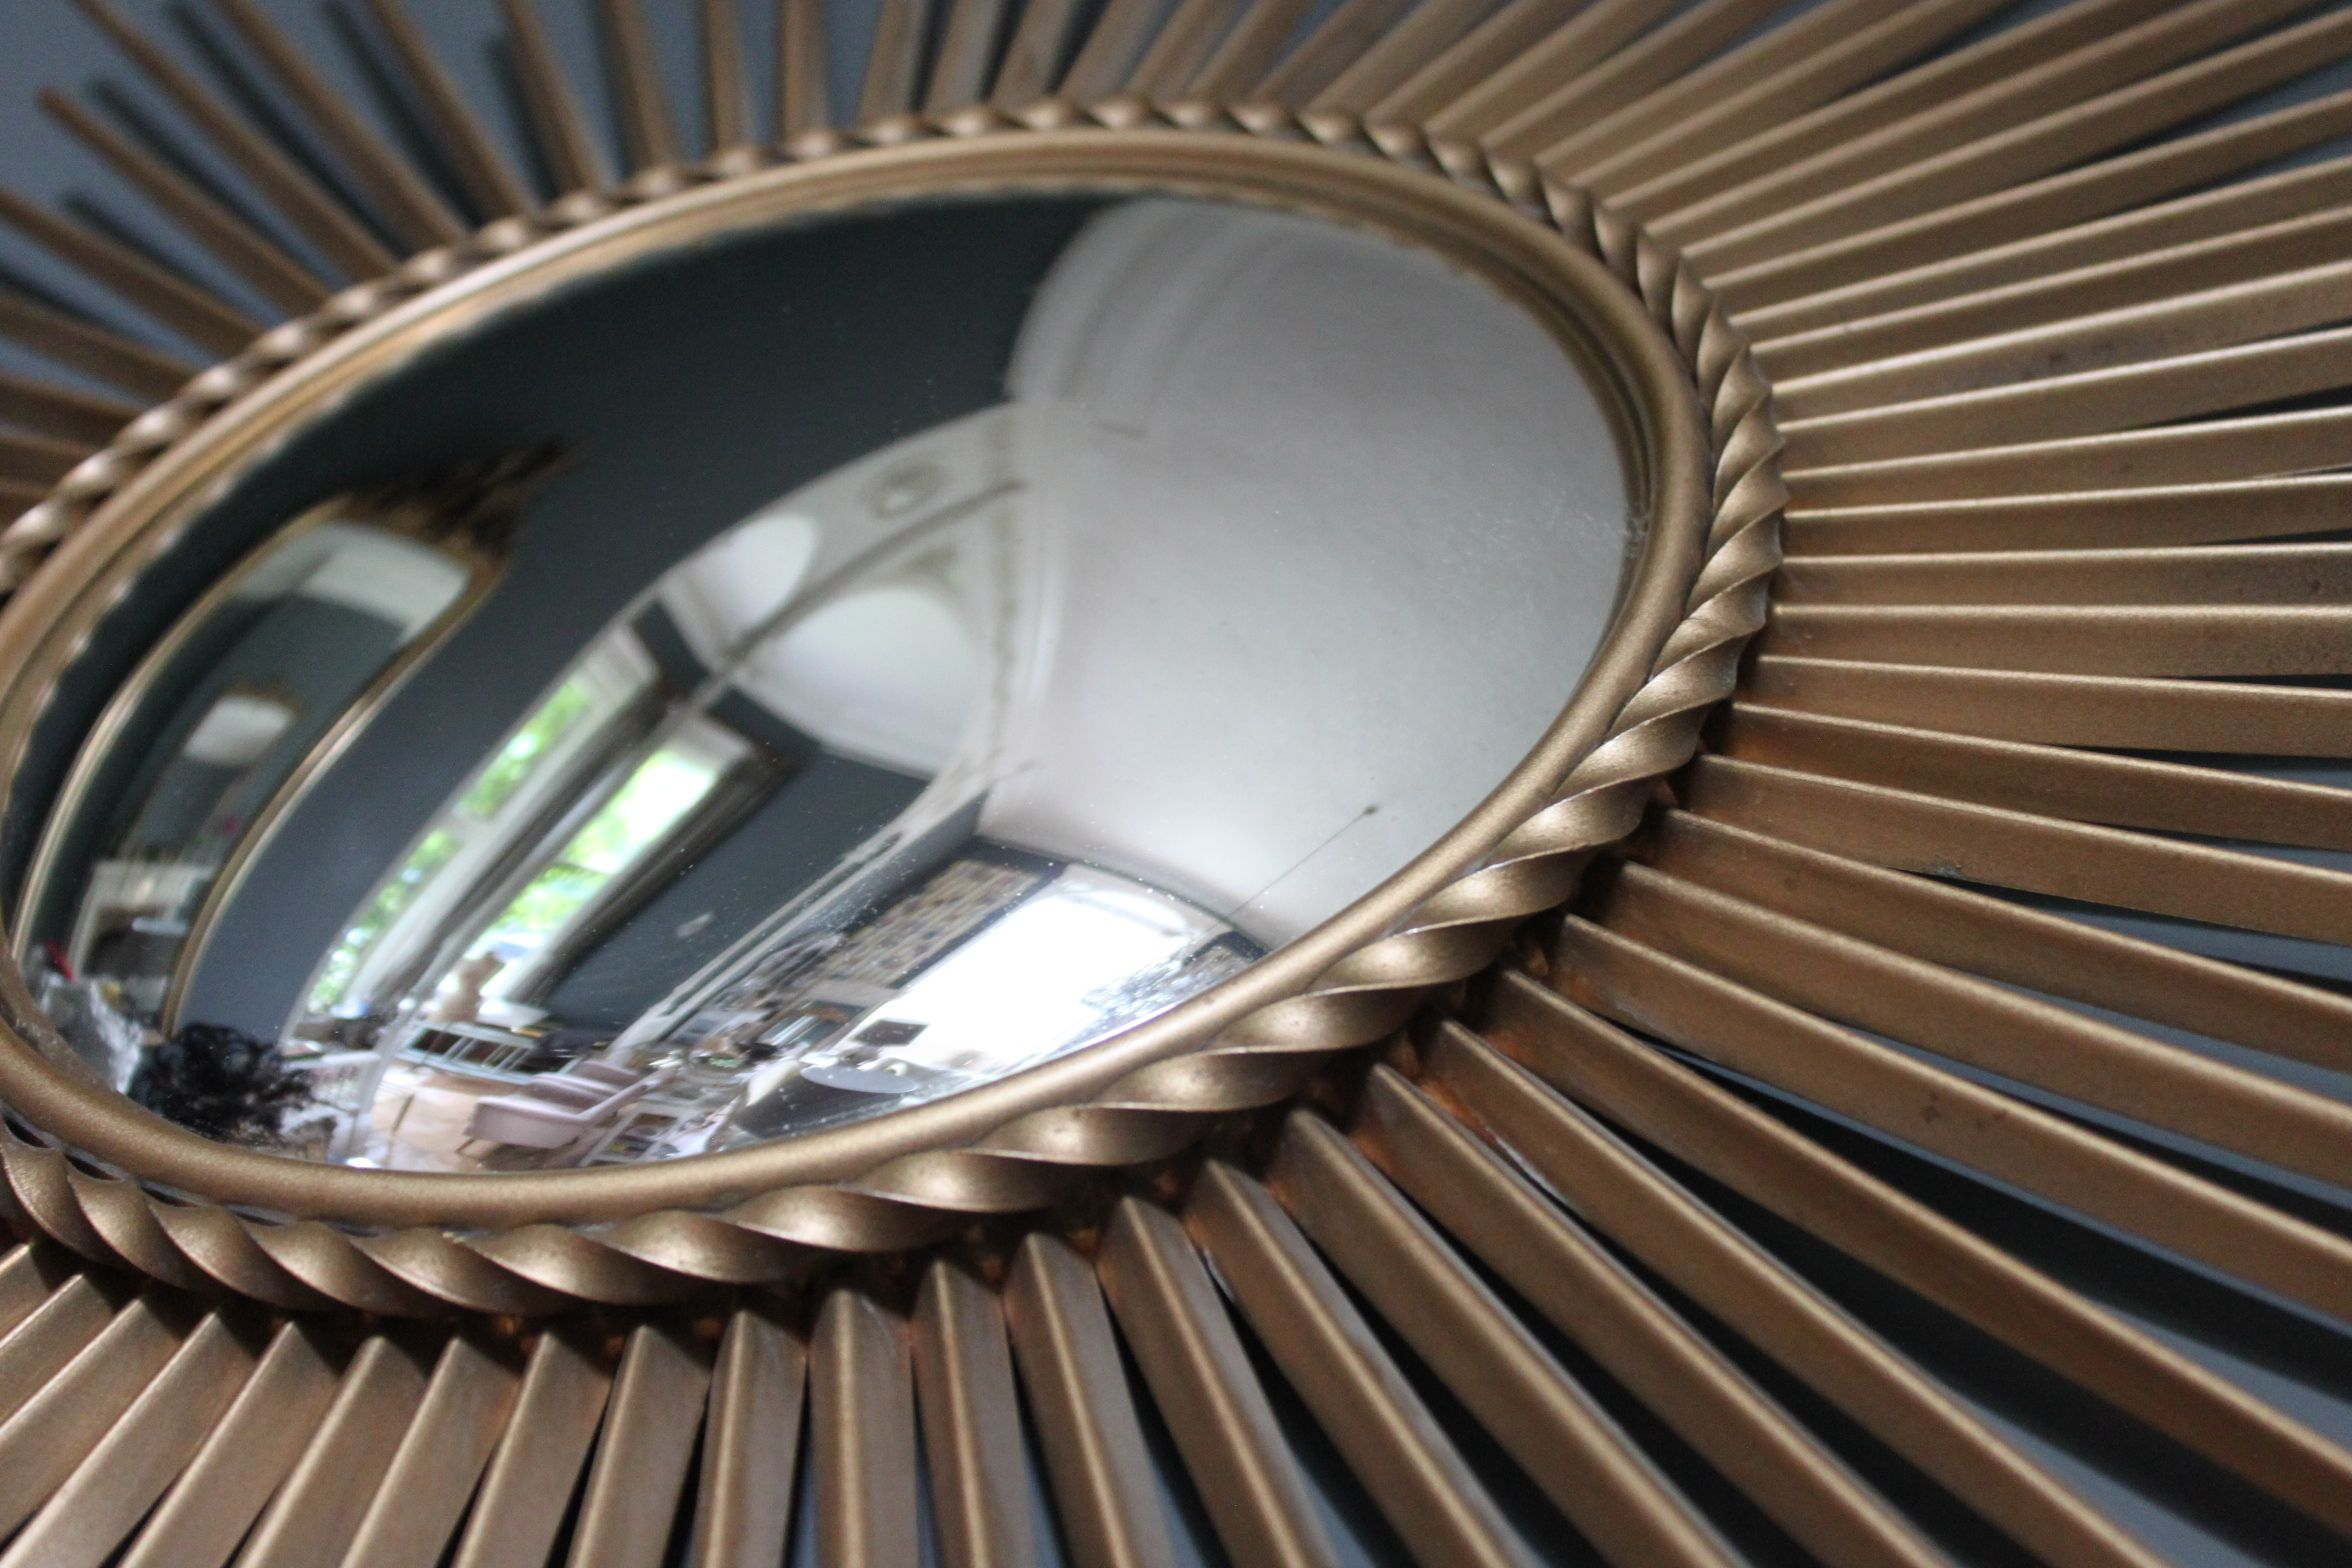 Original Chaty Vallauris sunburst mirror from www.thevintagetrader.co.uk